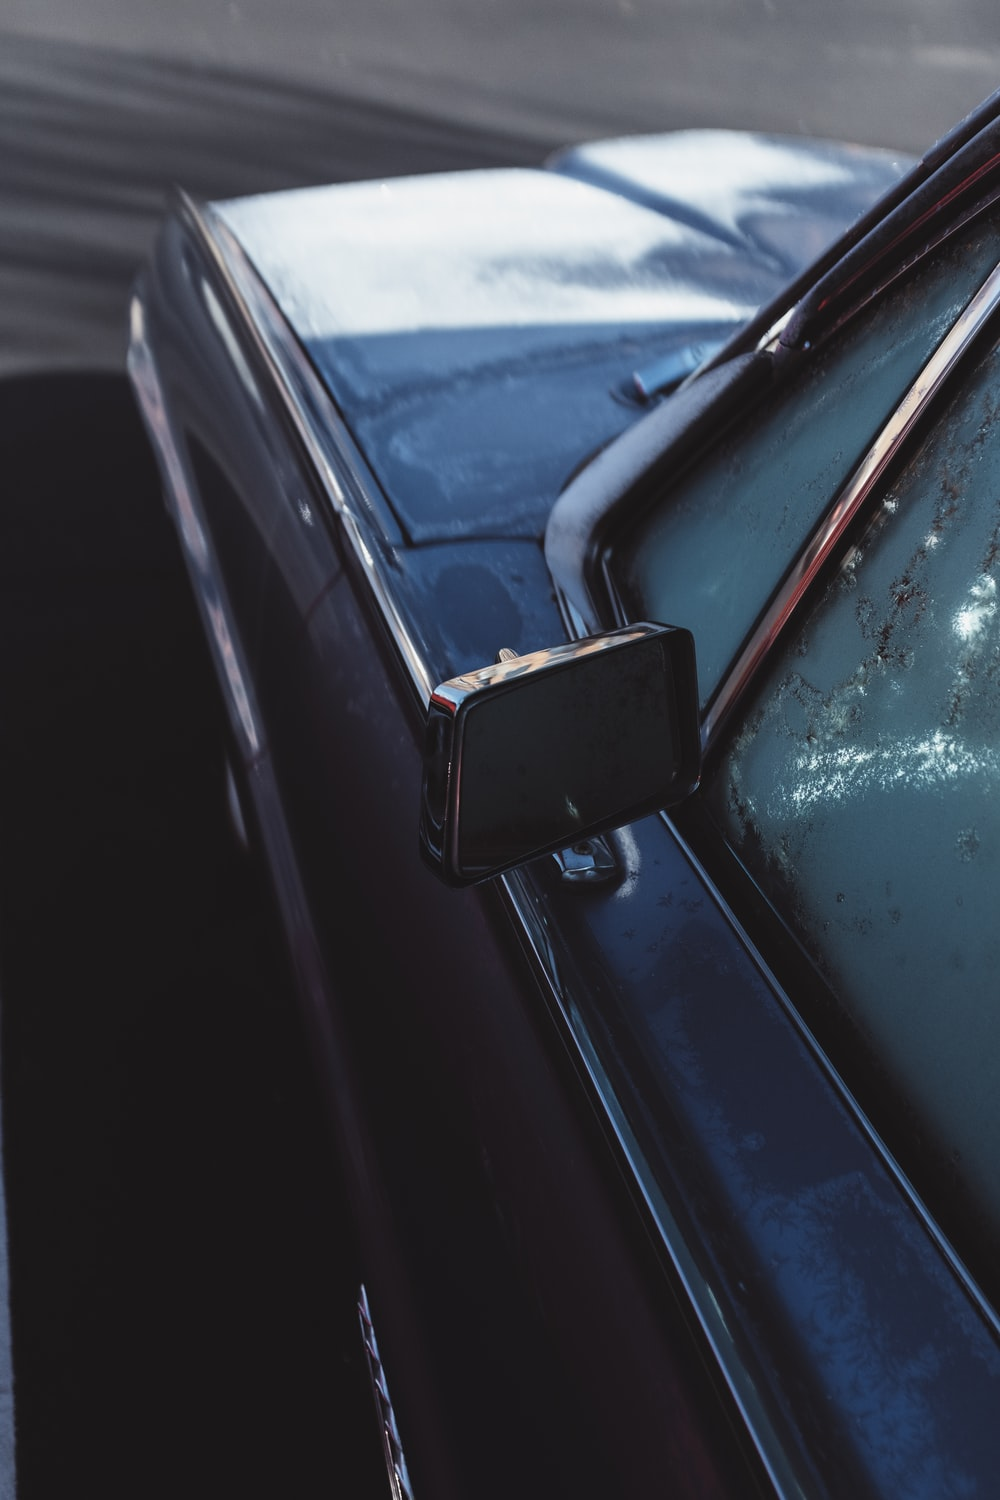 silver car with rectangular side mirror